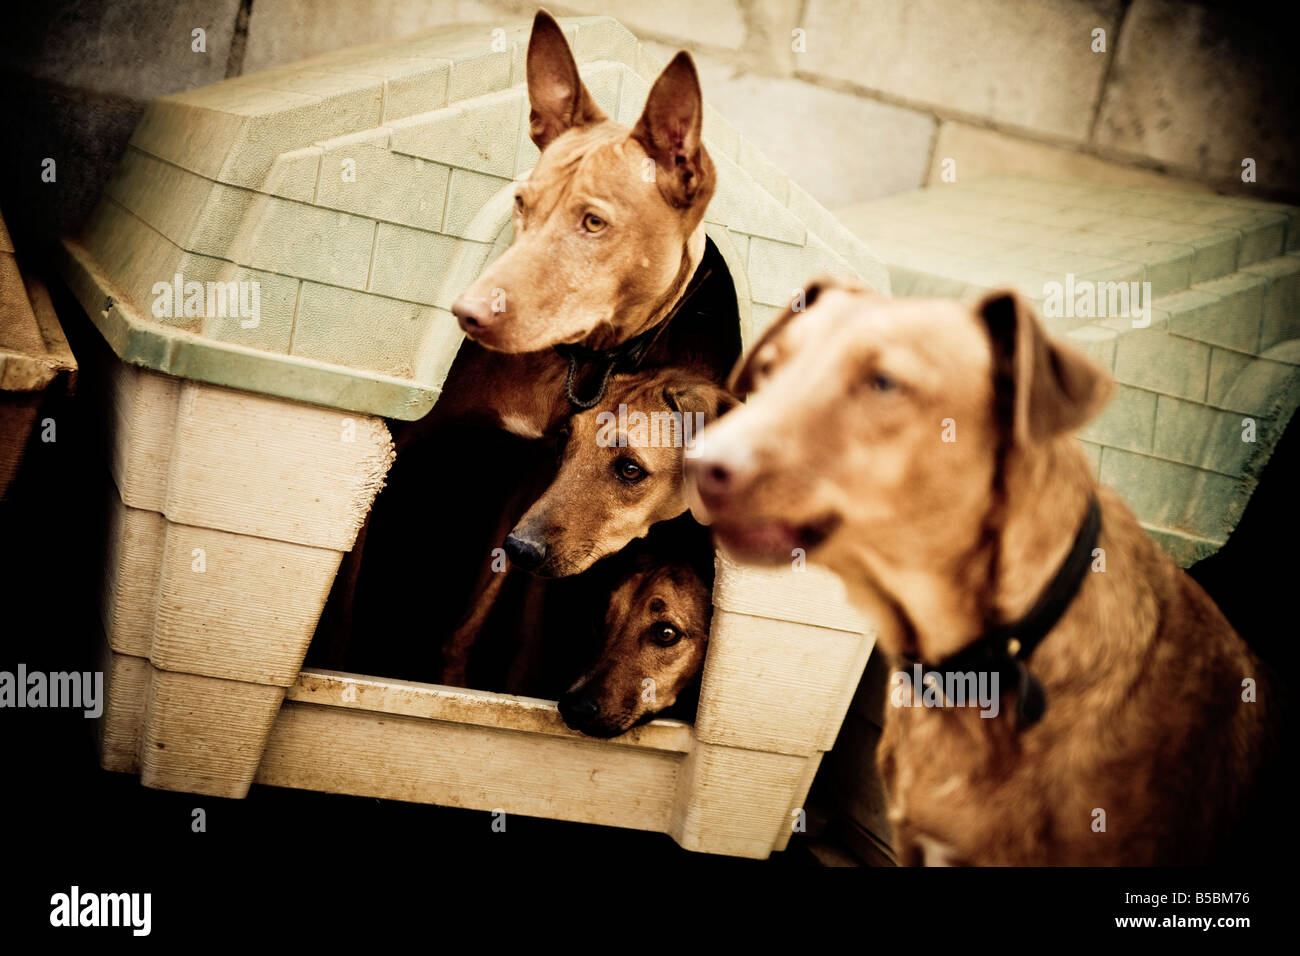 Four dogs from a rescue center, three of them are together in a small house and are looking out. - Stock Image